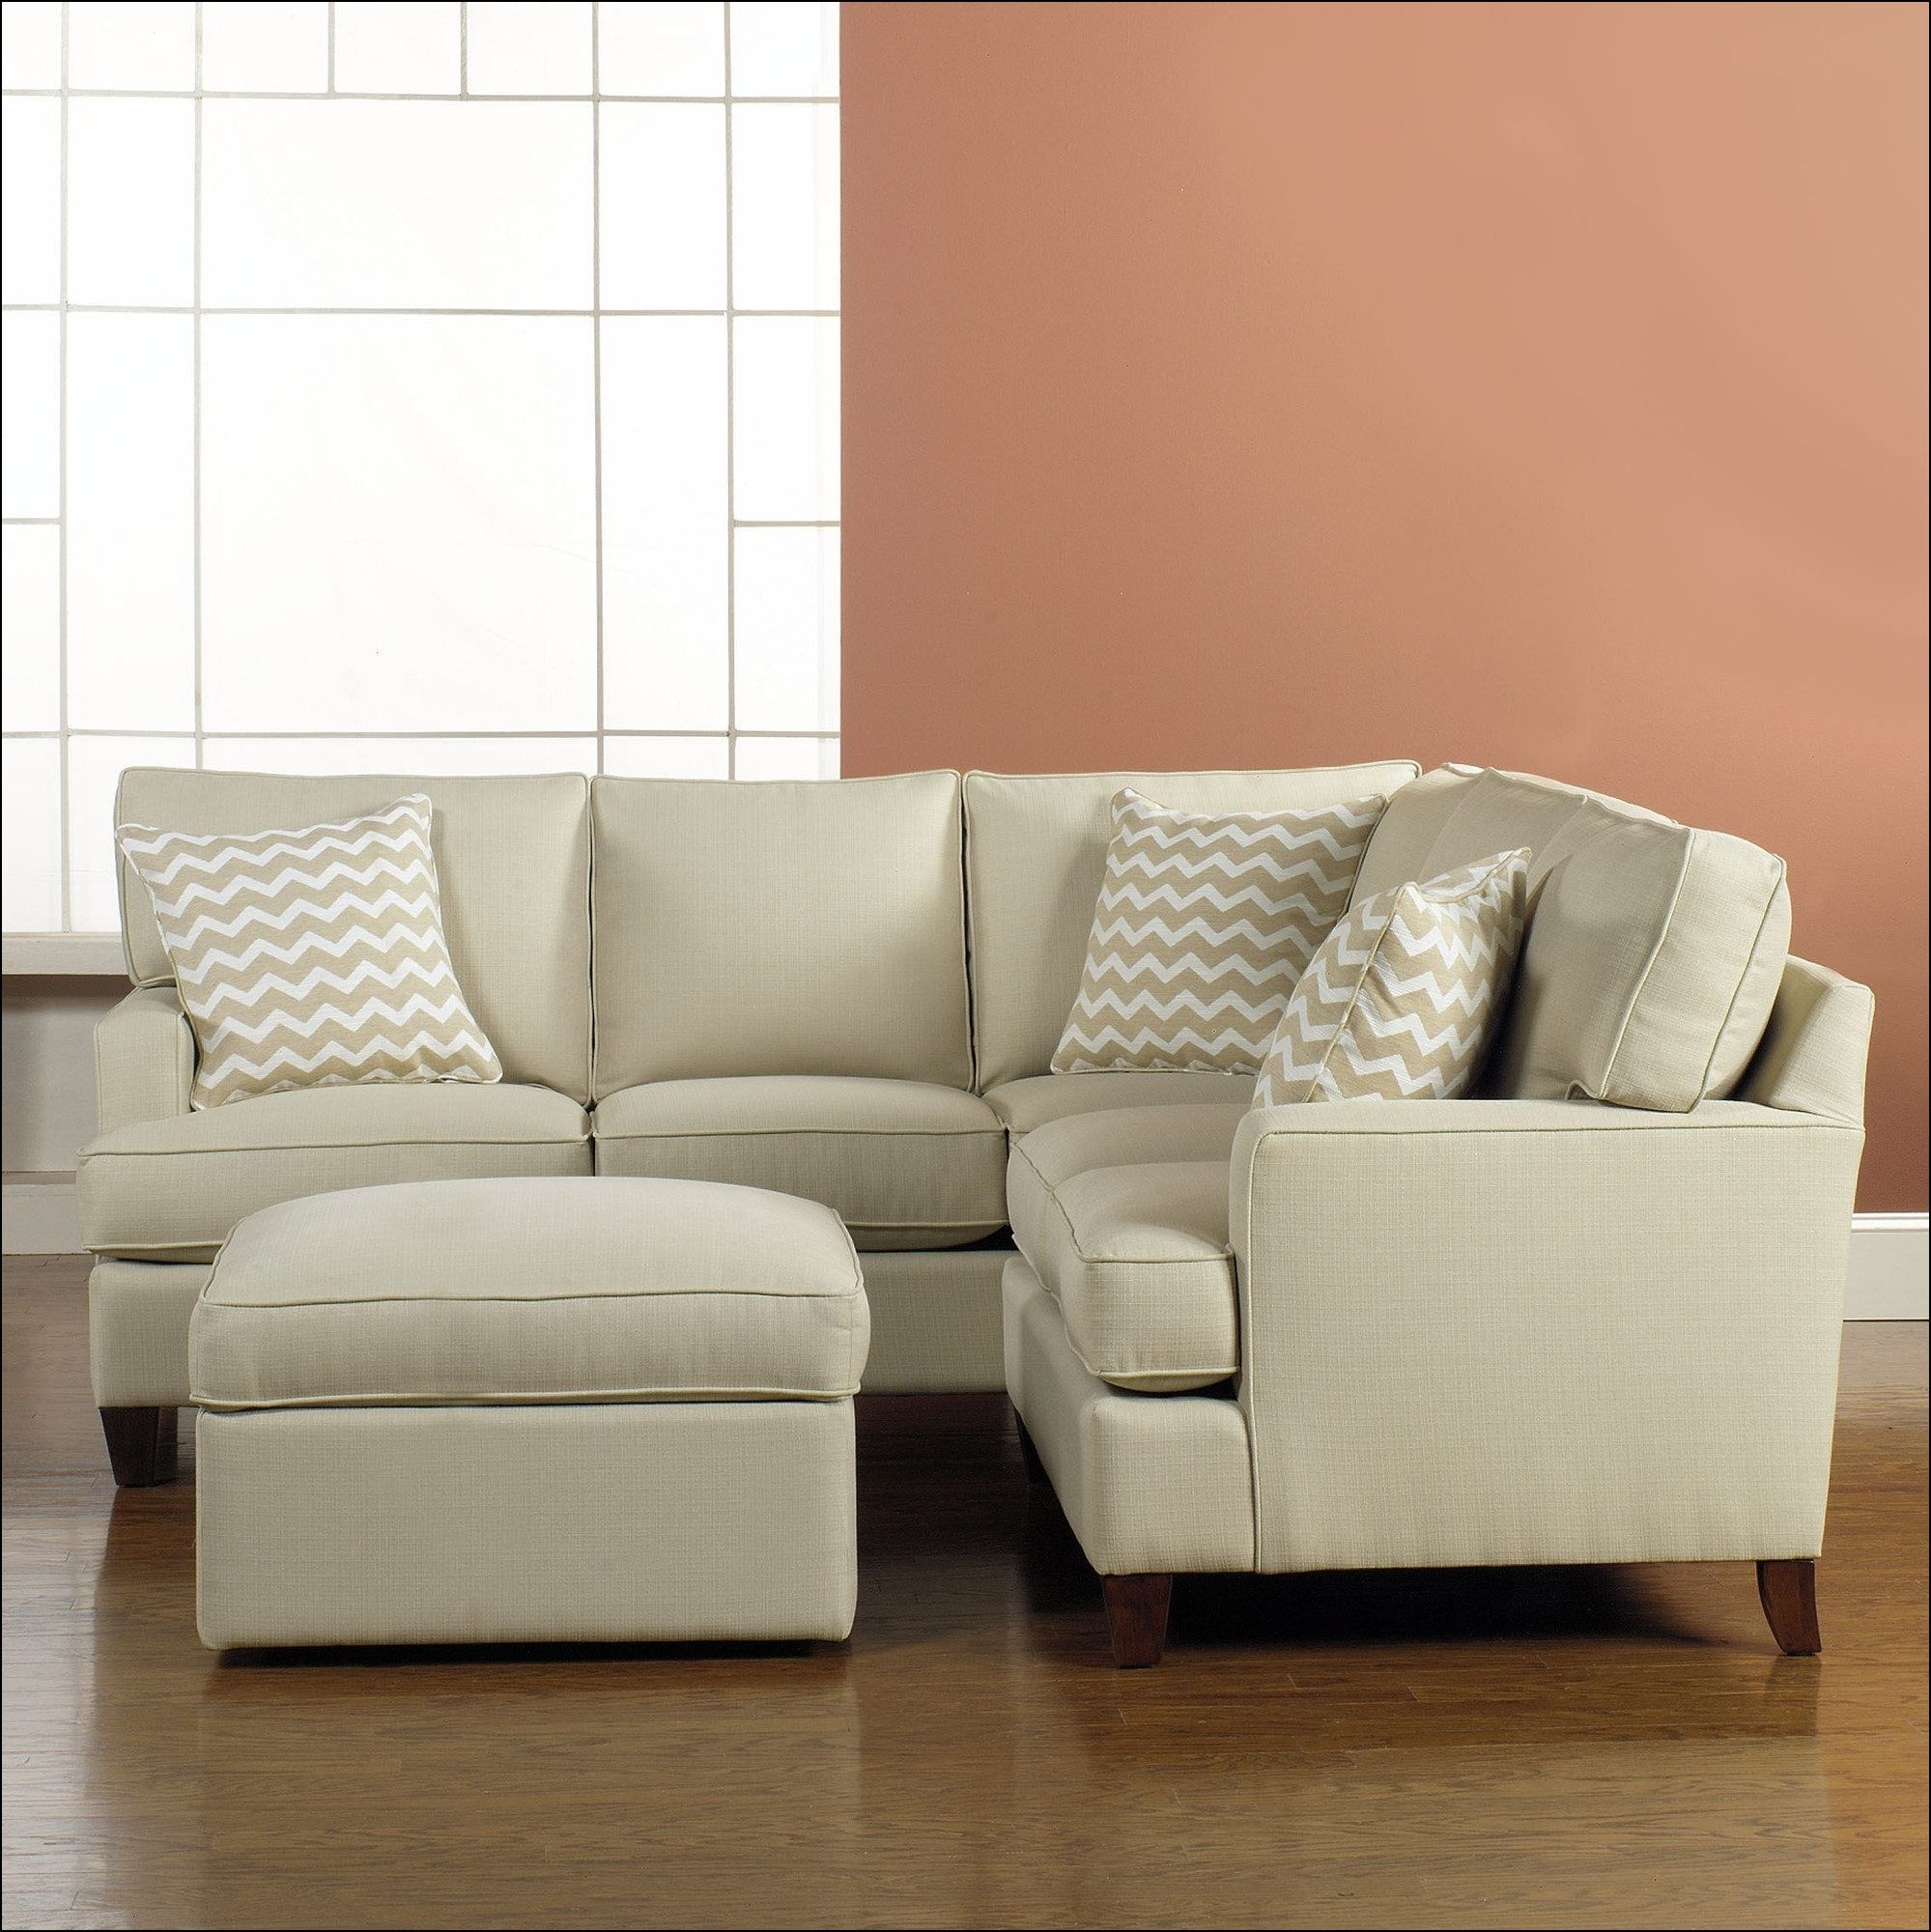 10+ Top Sectional Or Sofa For Small Living Room